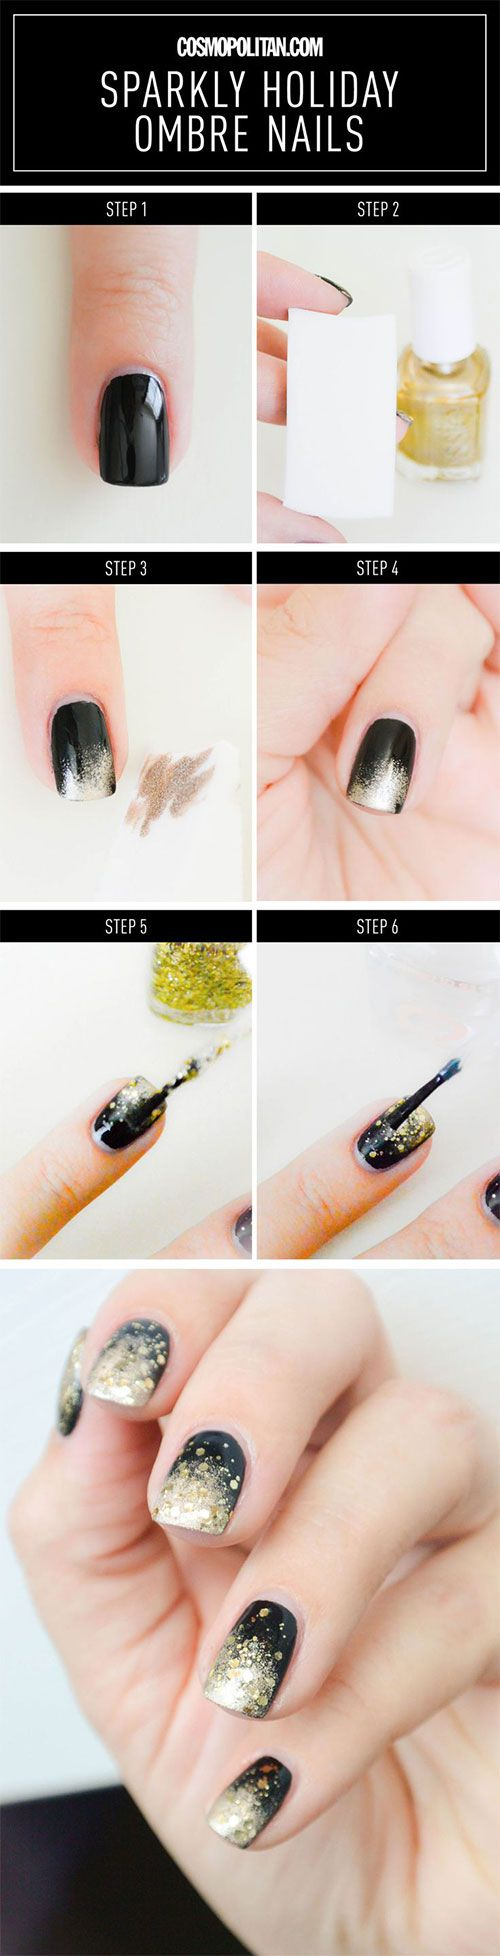 best images about makeup and nails on pinterest nail art